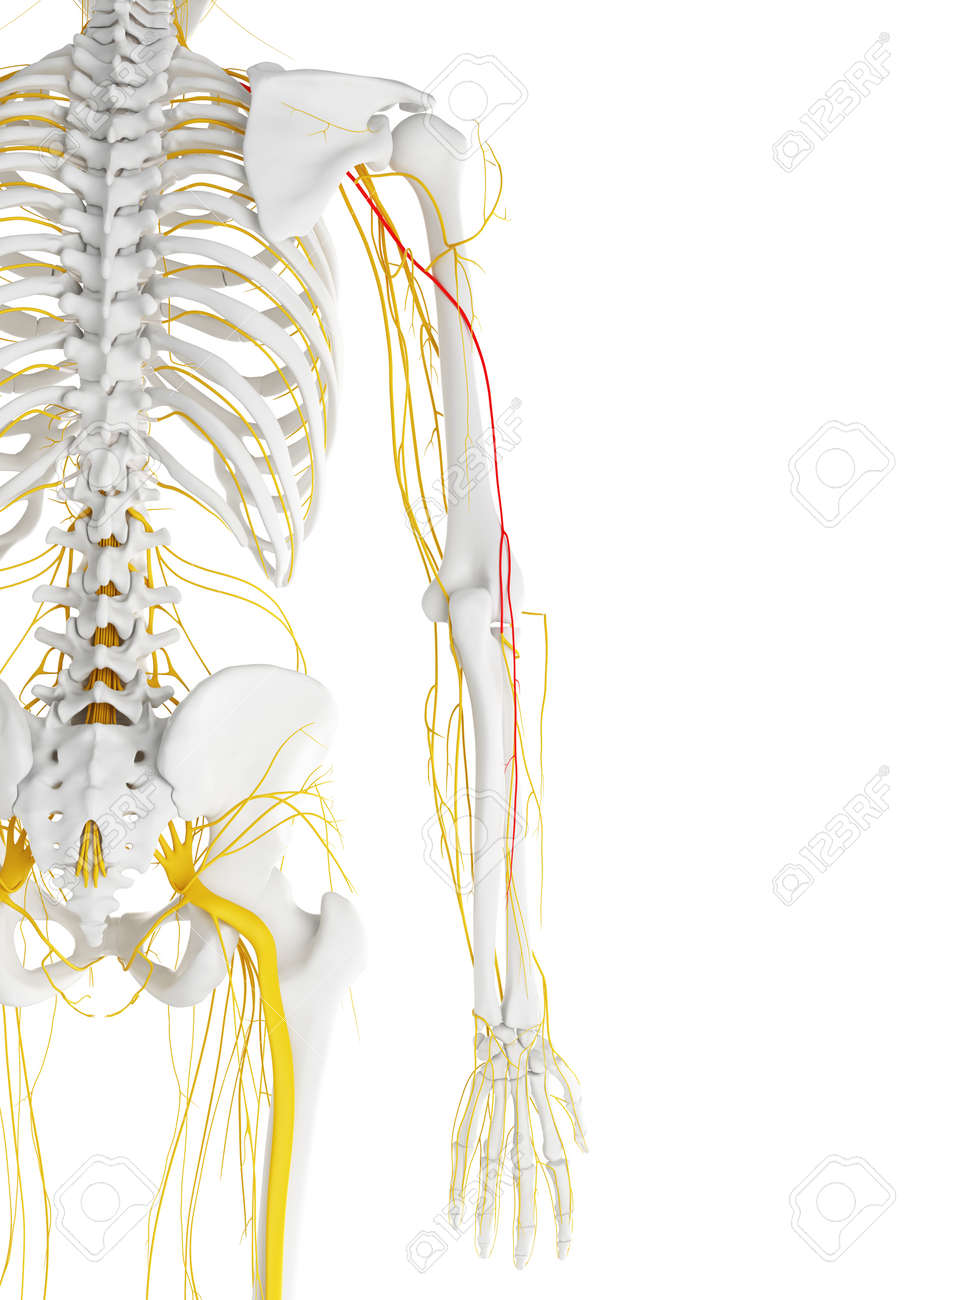 3d Rendered Medically Accurate Illustration Of The Radial Nerve ...